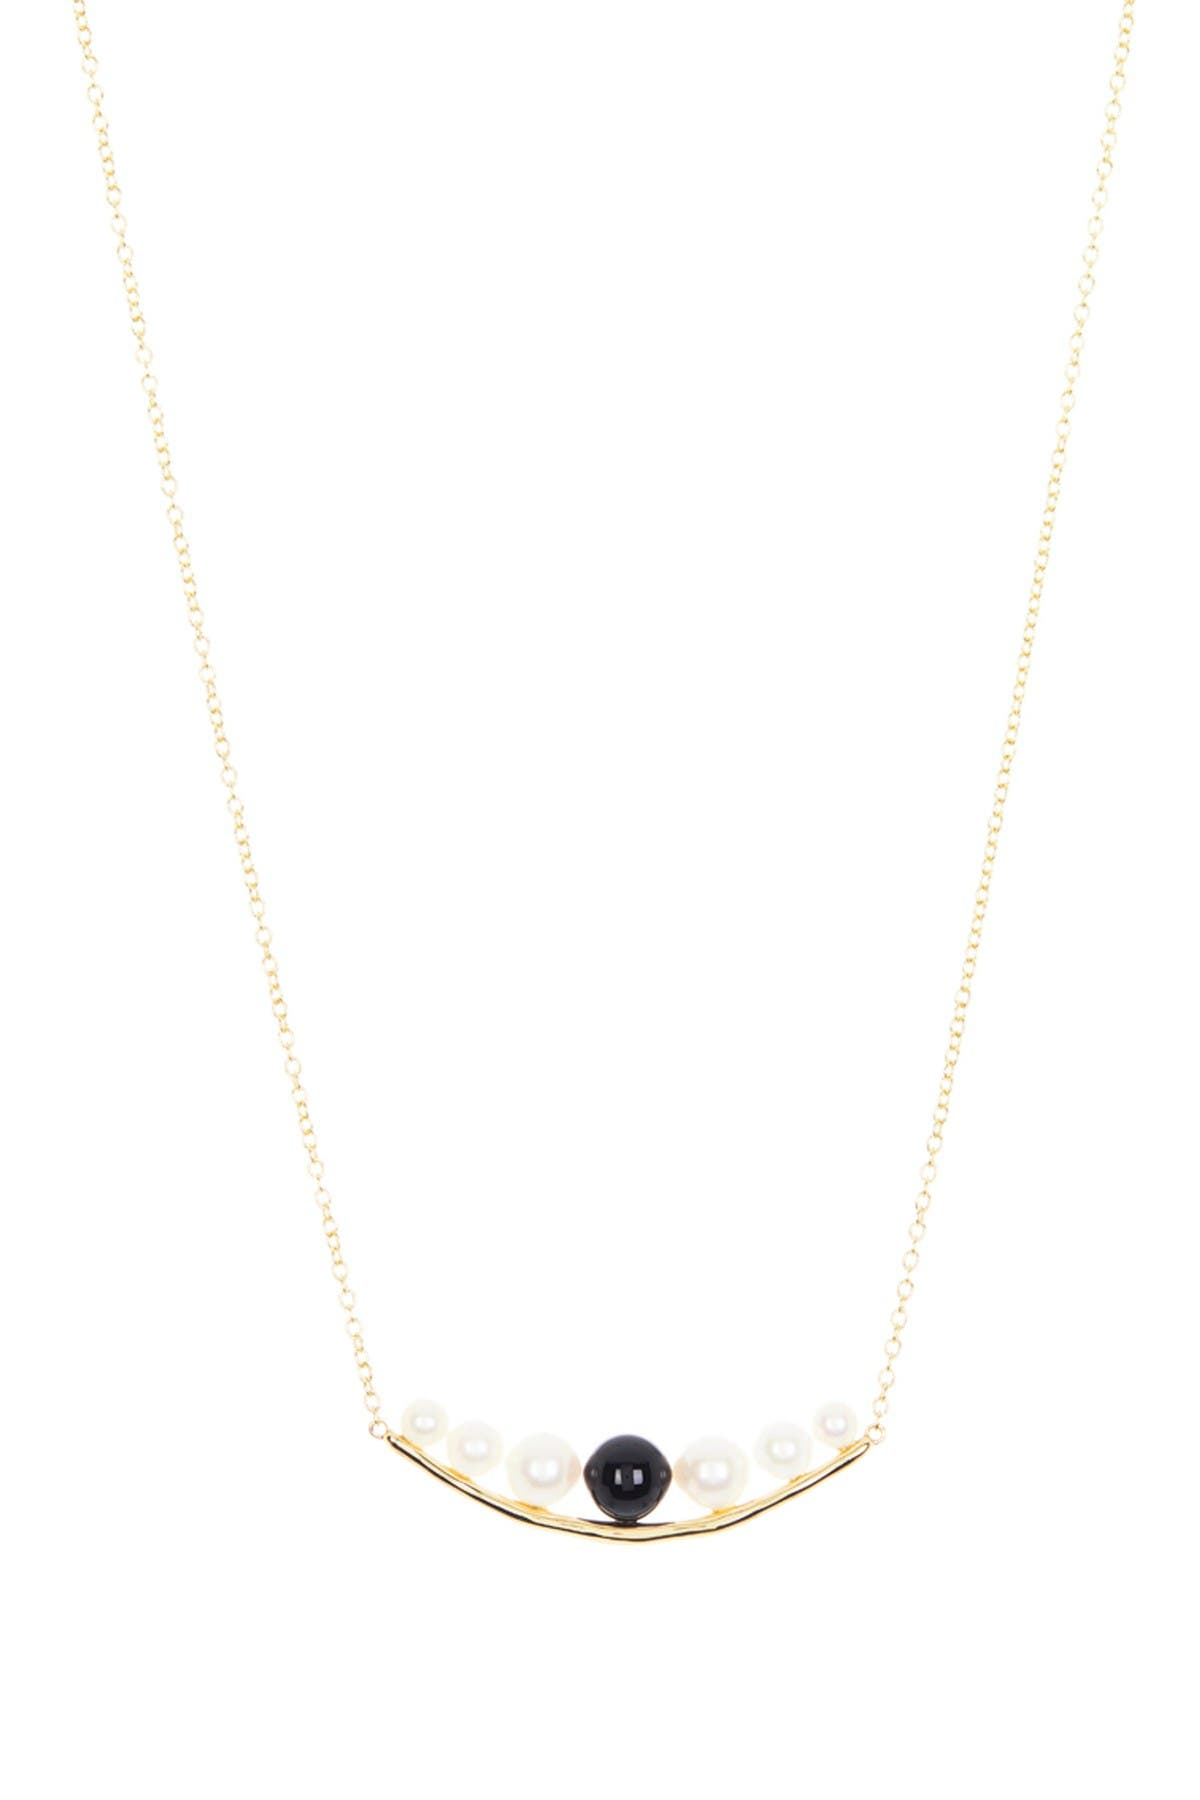 Image of Ippolita Prisma Onyx Stone Bead & 4.0-7.5mm Cultured Freshwater Pearl Curved Bar Necklace